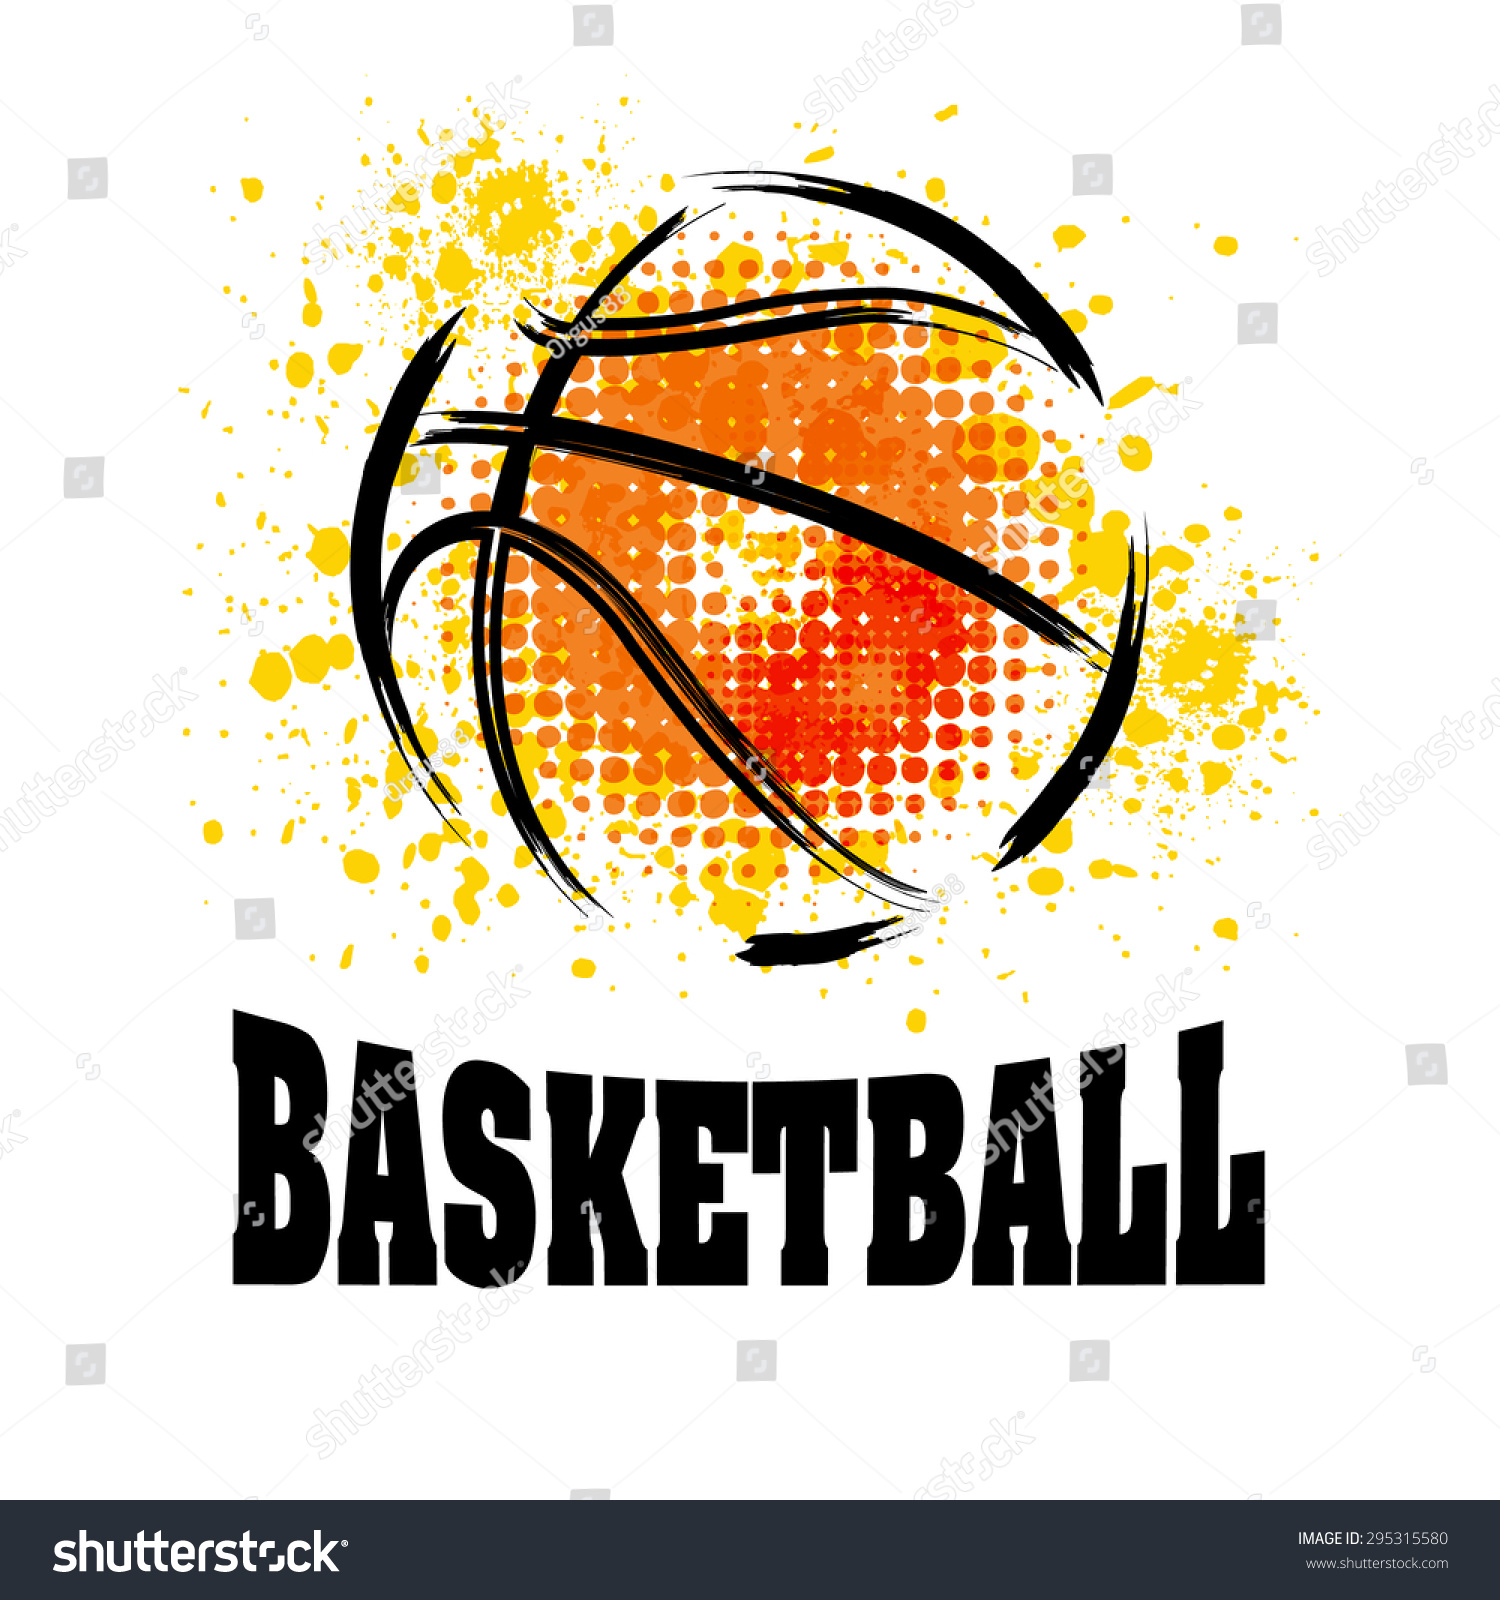 basketball t shirt design editor 56 - Basketball T Shirt Design Ideas